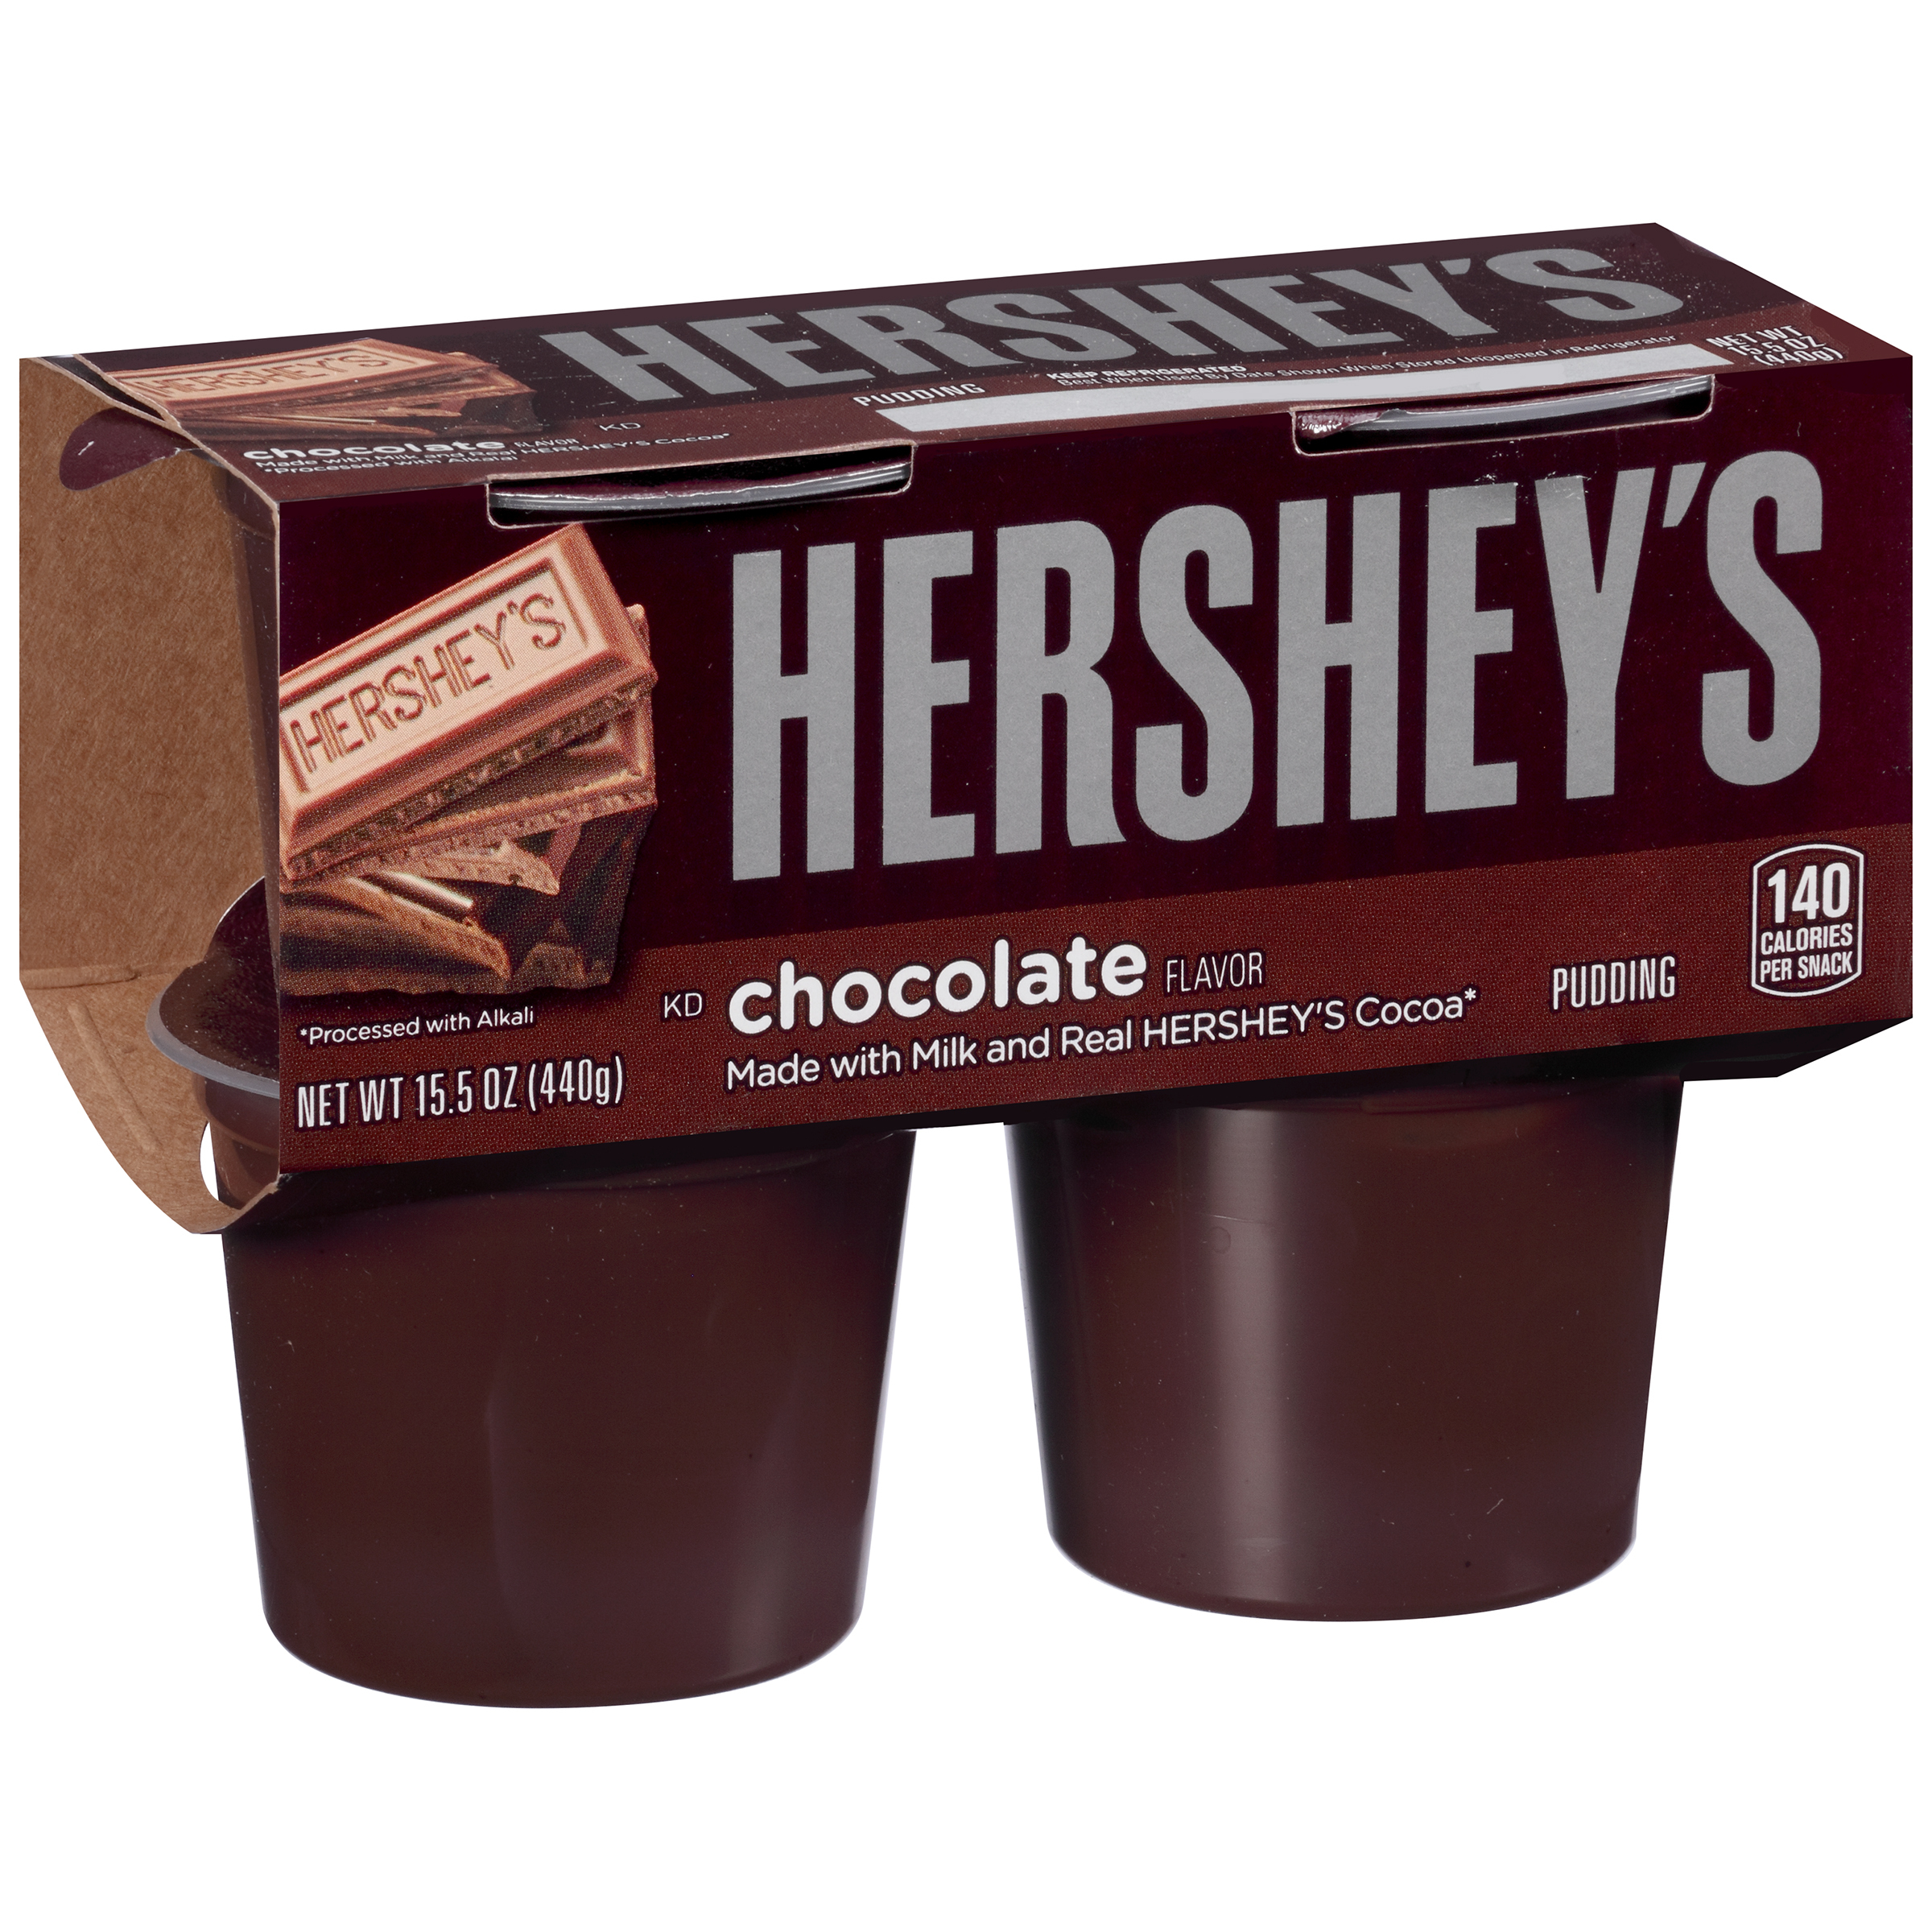 Hershey's Chocolate Pudding Cups, 4 count Sleeve